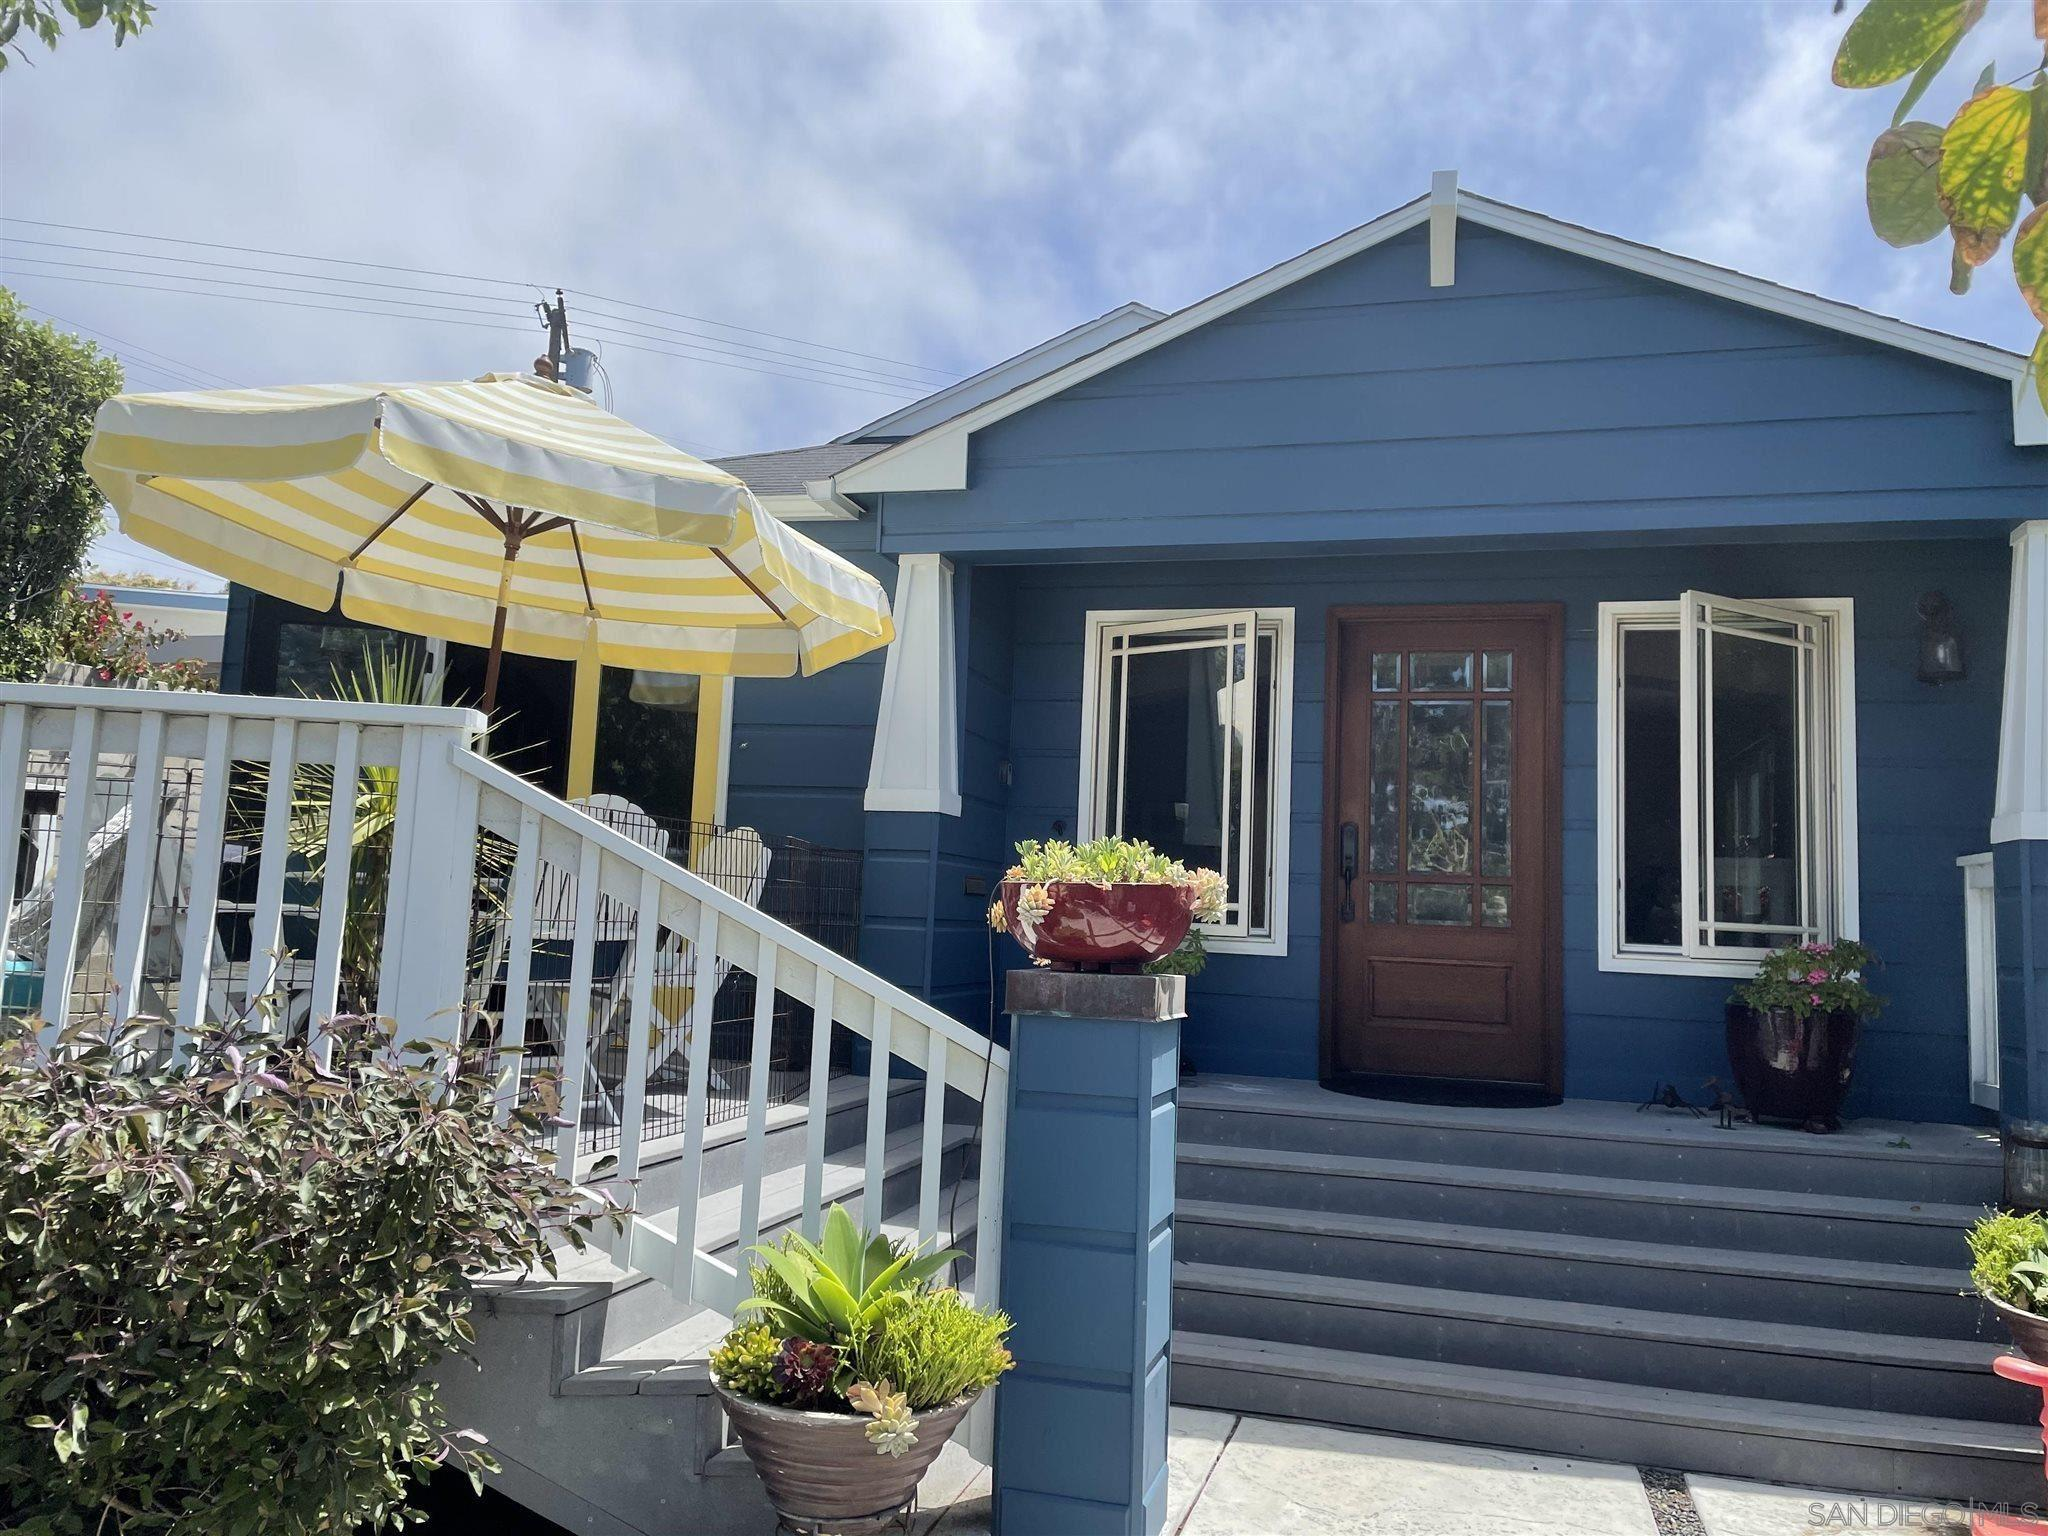 Charming Bird Rock Cottage, ready for you to move in and enjoy! Easy walking to La Jolla Blvd's restaurants, coffee shops and shopping. Cool ocean breezes on the large front deck. Updated kitchen and bathroom. Original wood flooring. Low maintenance backyard. Oversized 1-car garage.